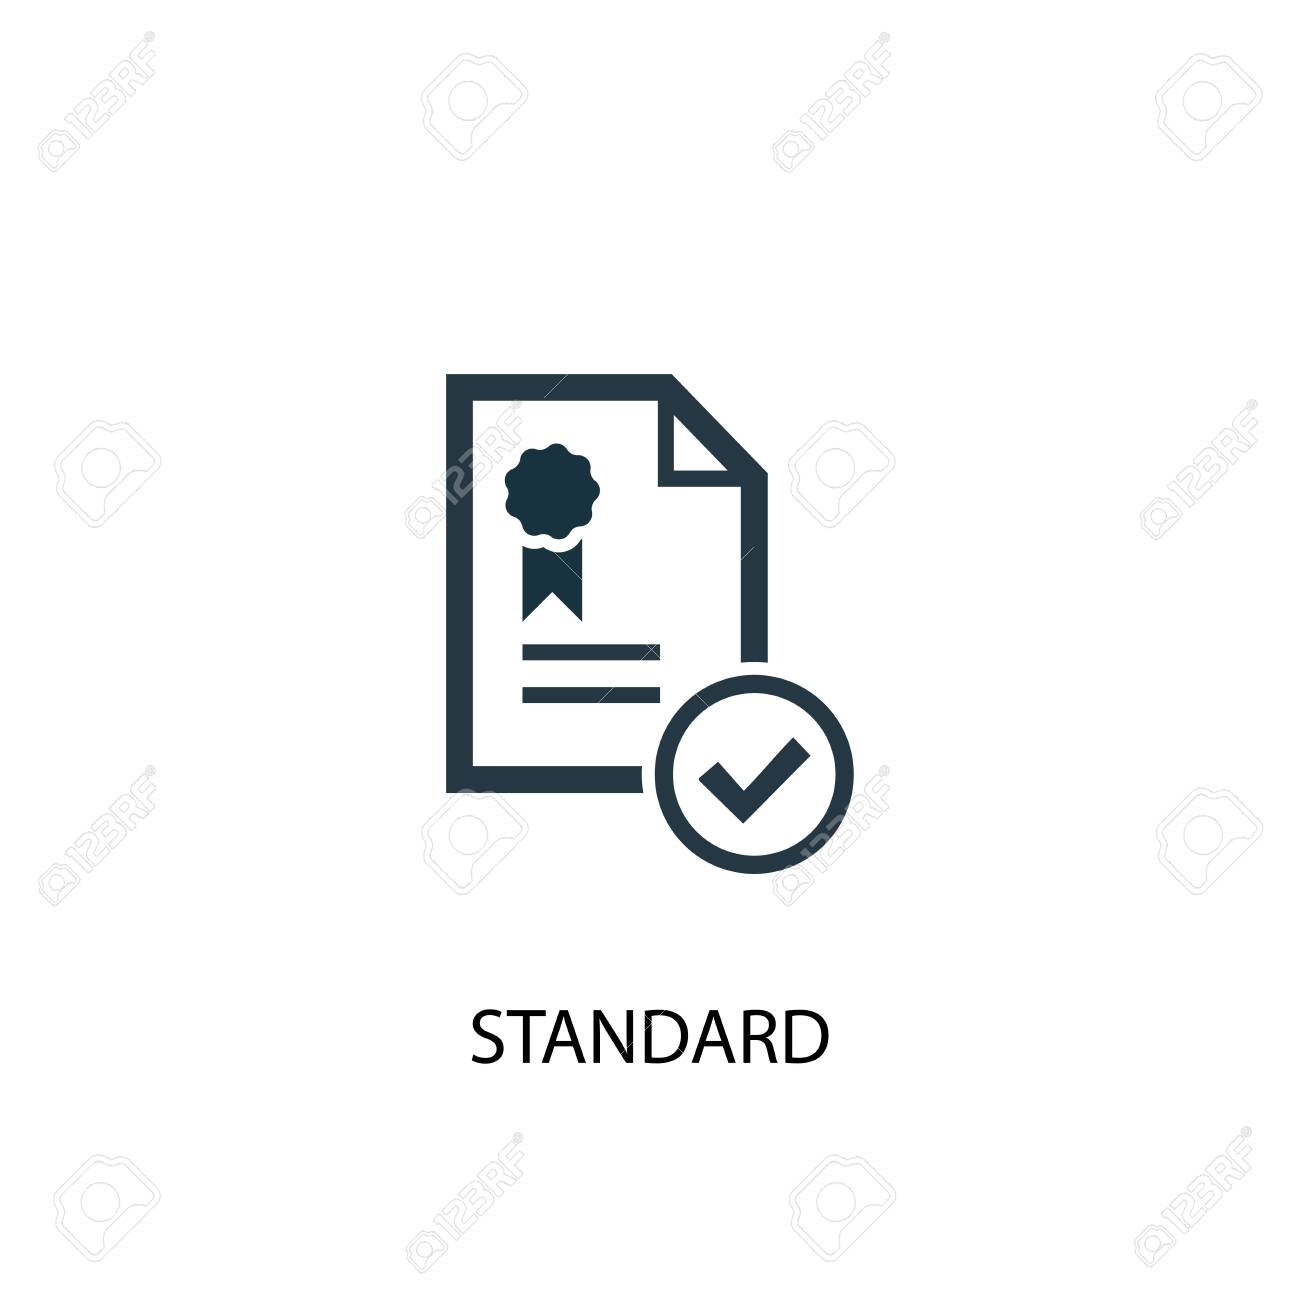 standard icon. Simple element illustration. standard concept symbol design. Can be used for web - 133748800